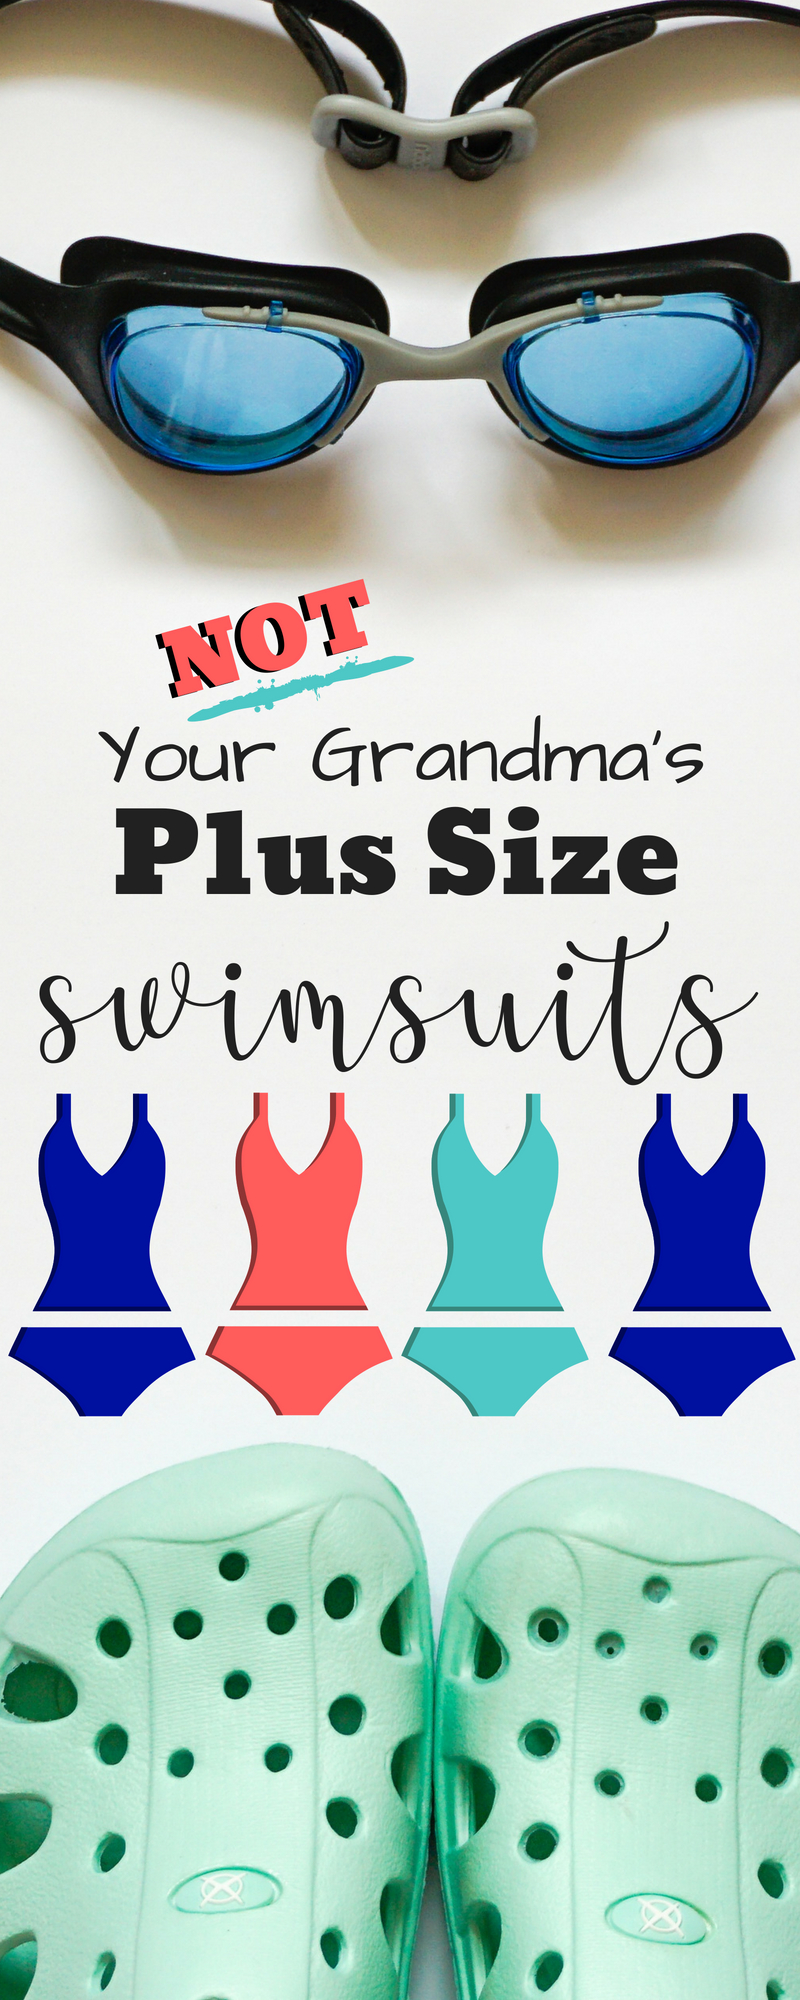 Check out these plus size swimsuits to make you feel skinny! Plus size women will feel skinny and beautiful in these plus size swimsuits! #WomensStyle #Fashion #OOTD #PlusSize #SummerStyle #Style